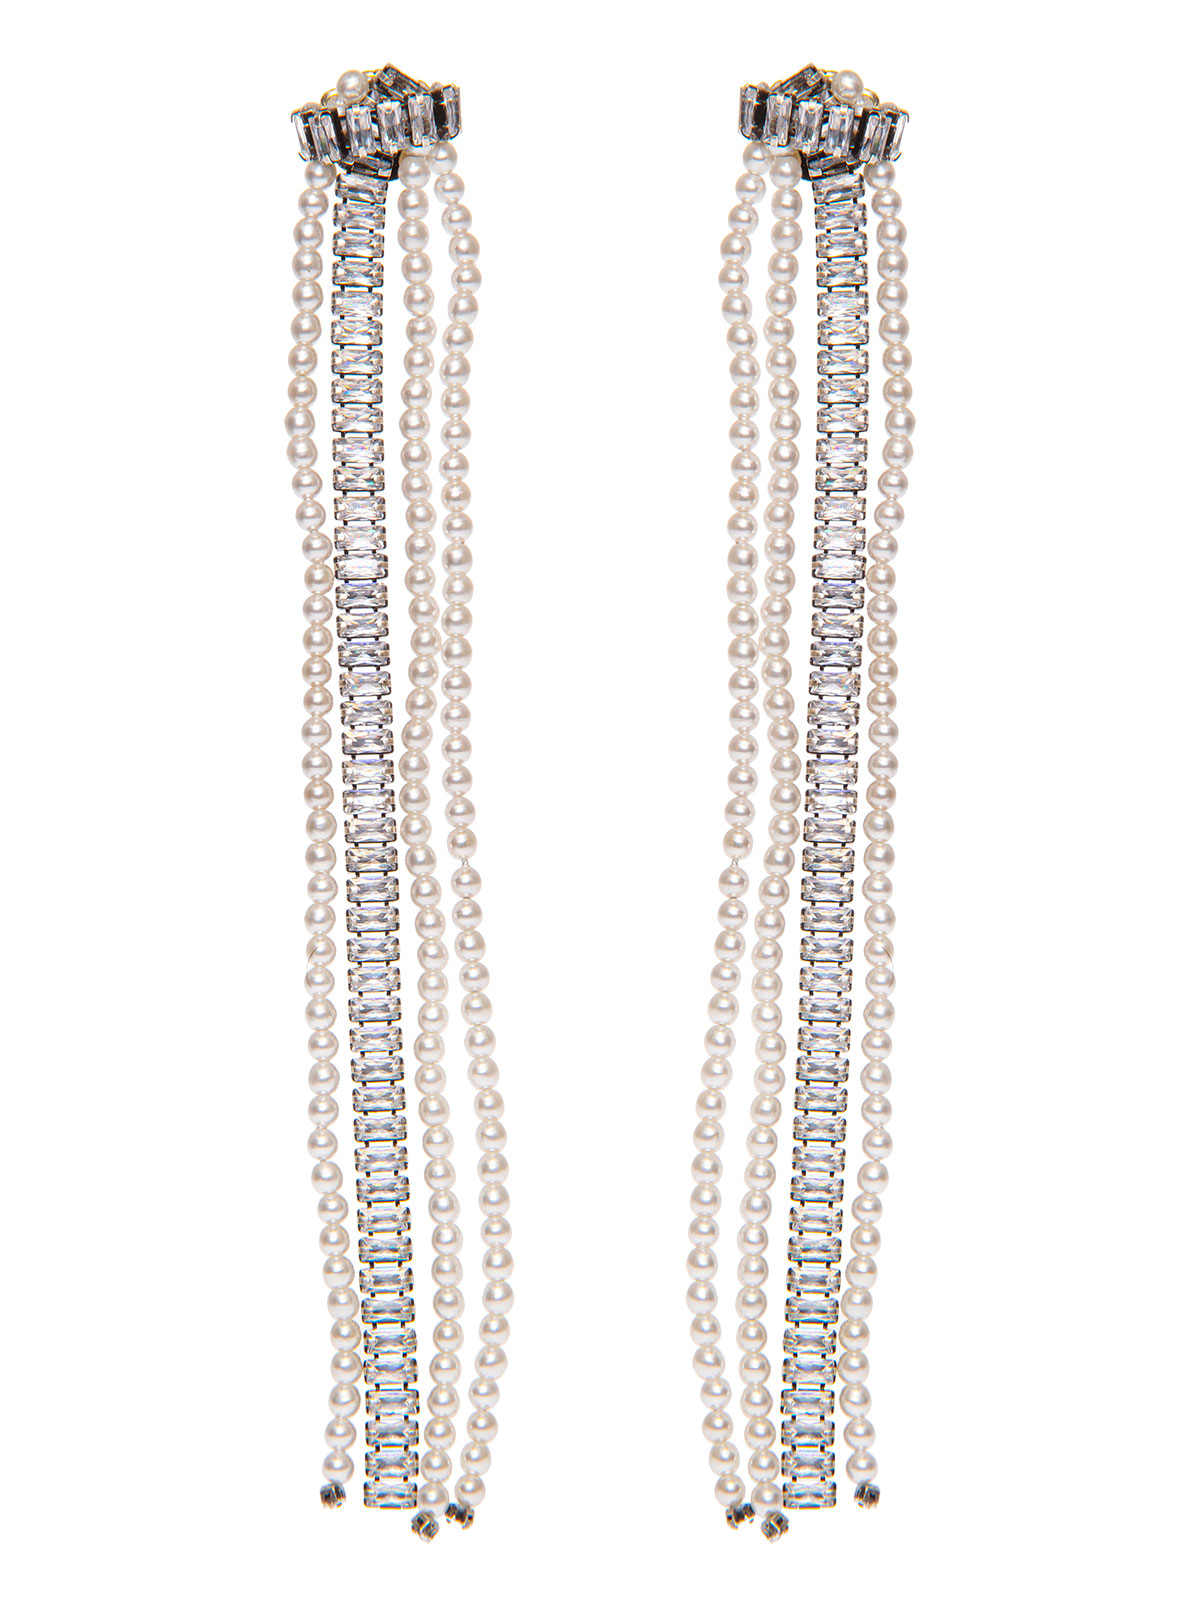 Crystal earrings with crystal and pearl fringe